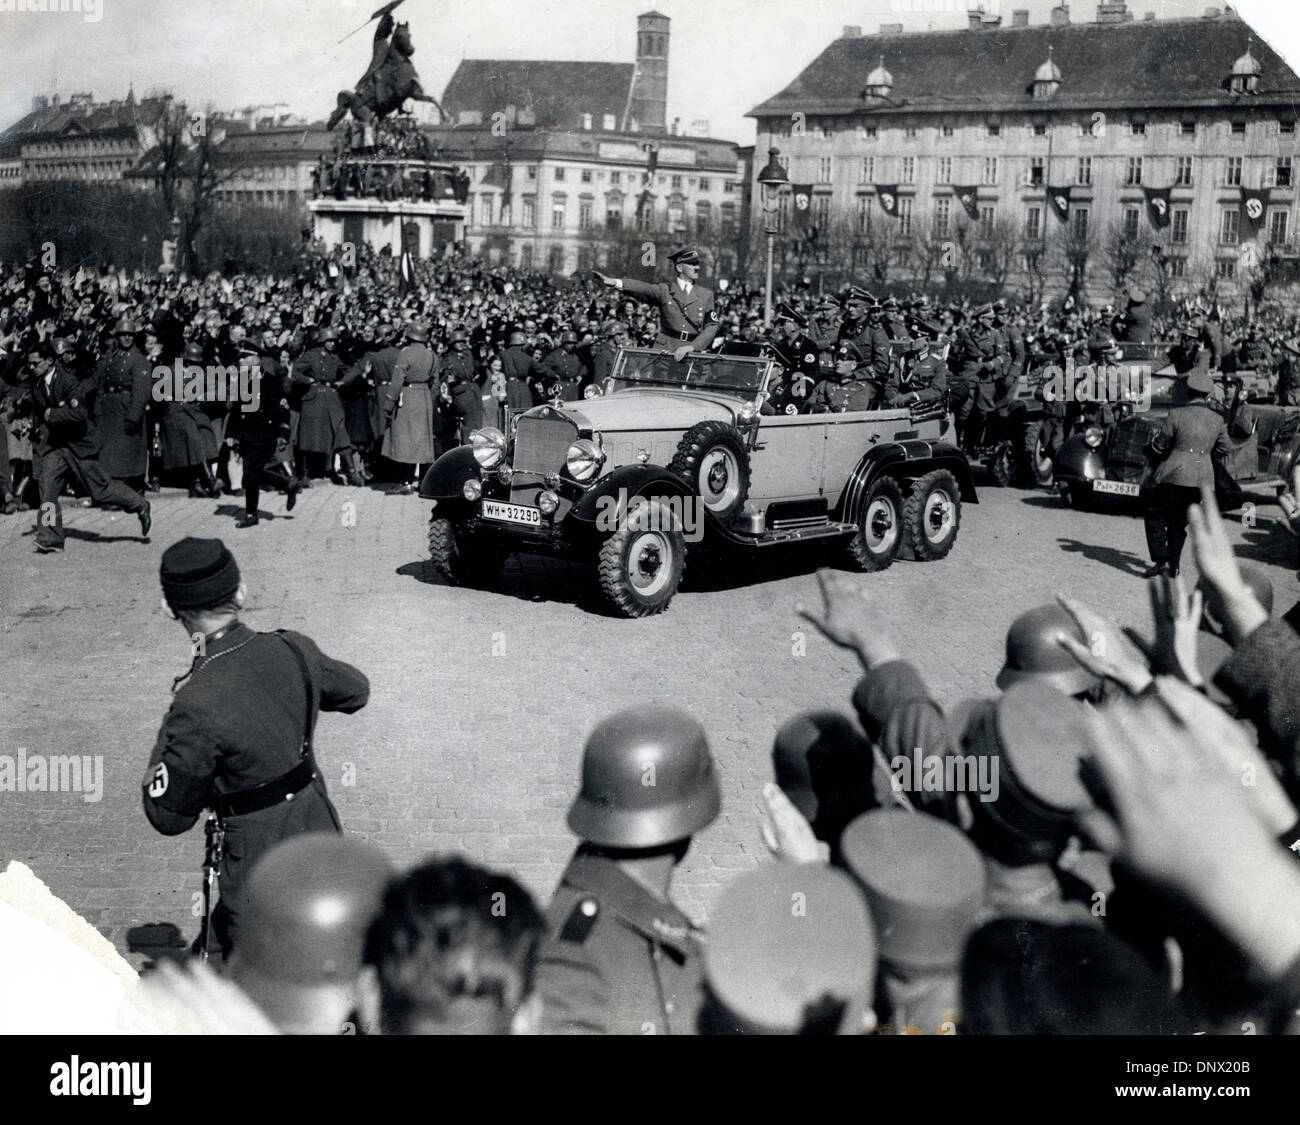 "1 marzo 1938 - Vienna, Austria - leader nazista ADOLF HITLER entrando nella piazza del vecchio palazzo imperiale di Vienna all'Anschluss …sterreichs, l'inclusione dell'Austria in un ""grande Germania' nel 1938. (Credito Immagine: © Keystone Pictures USA/ZUMAPRESS.com) Immagini Stock"